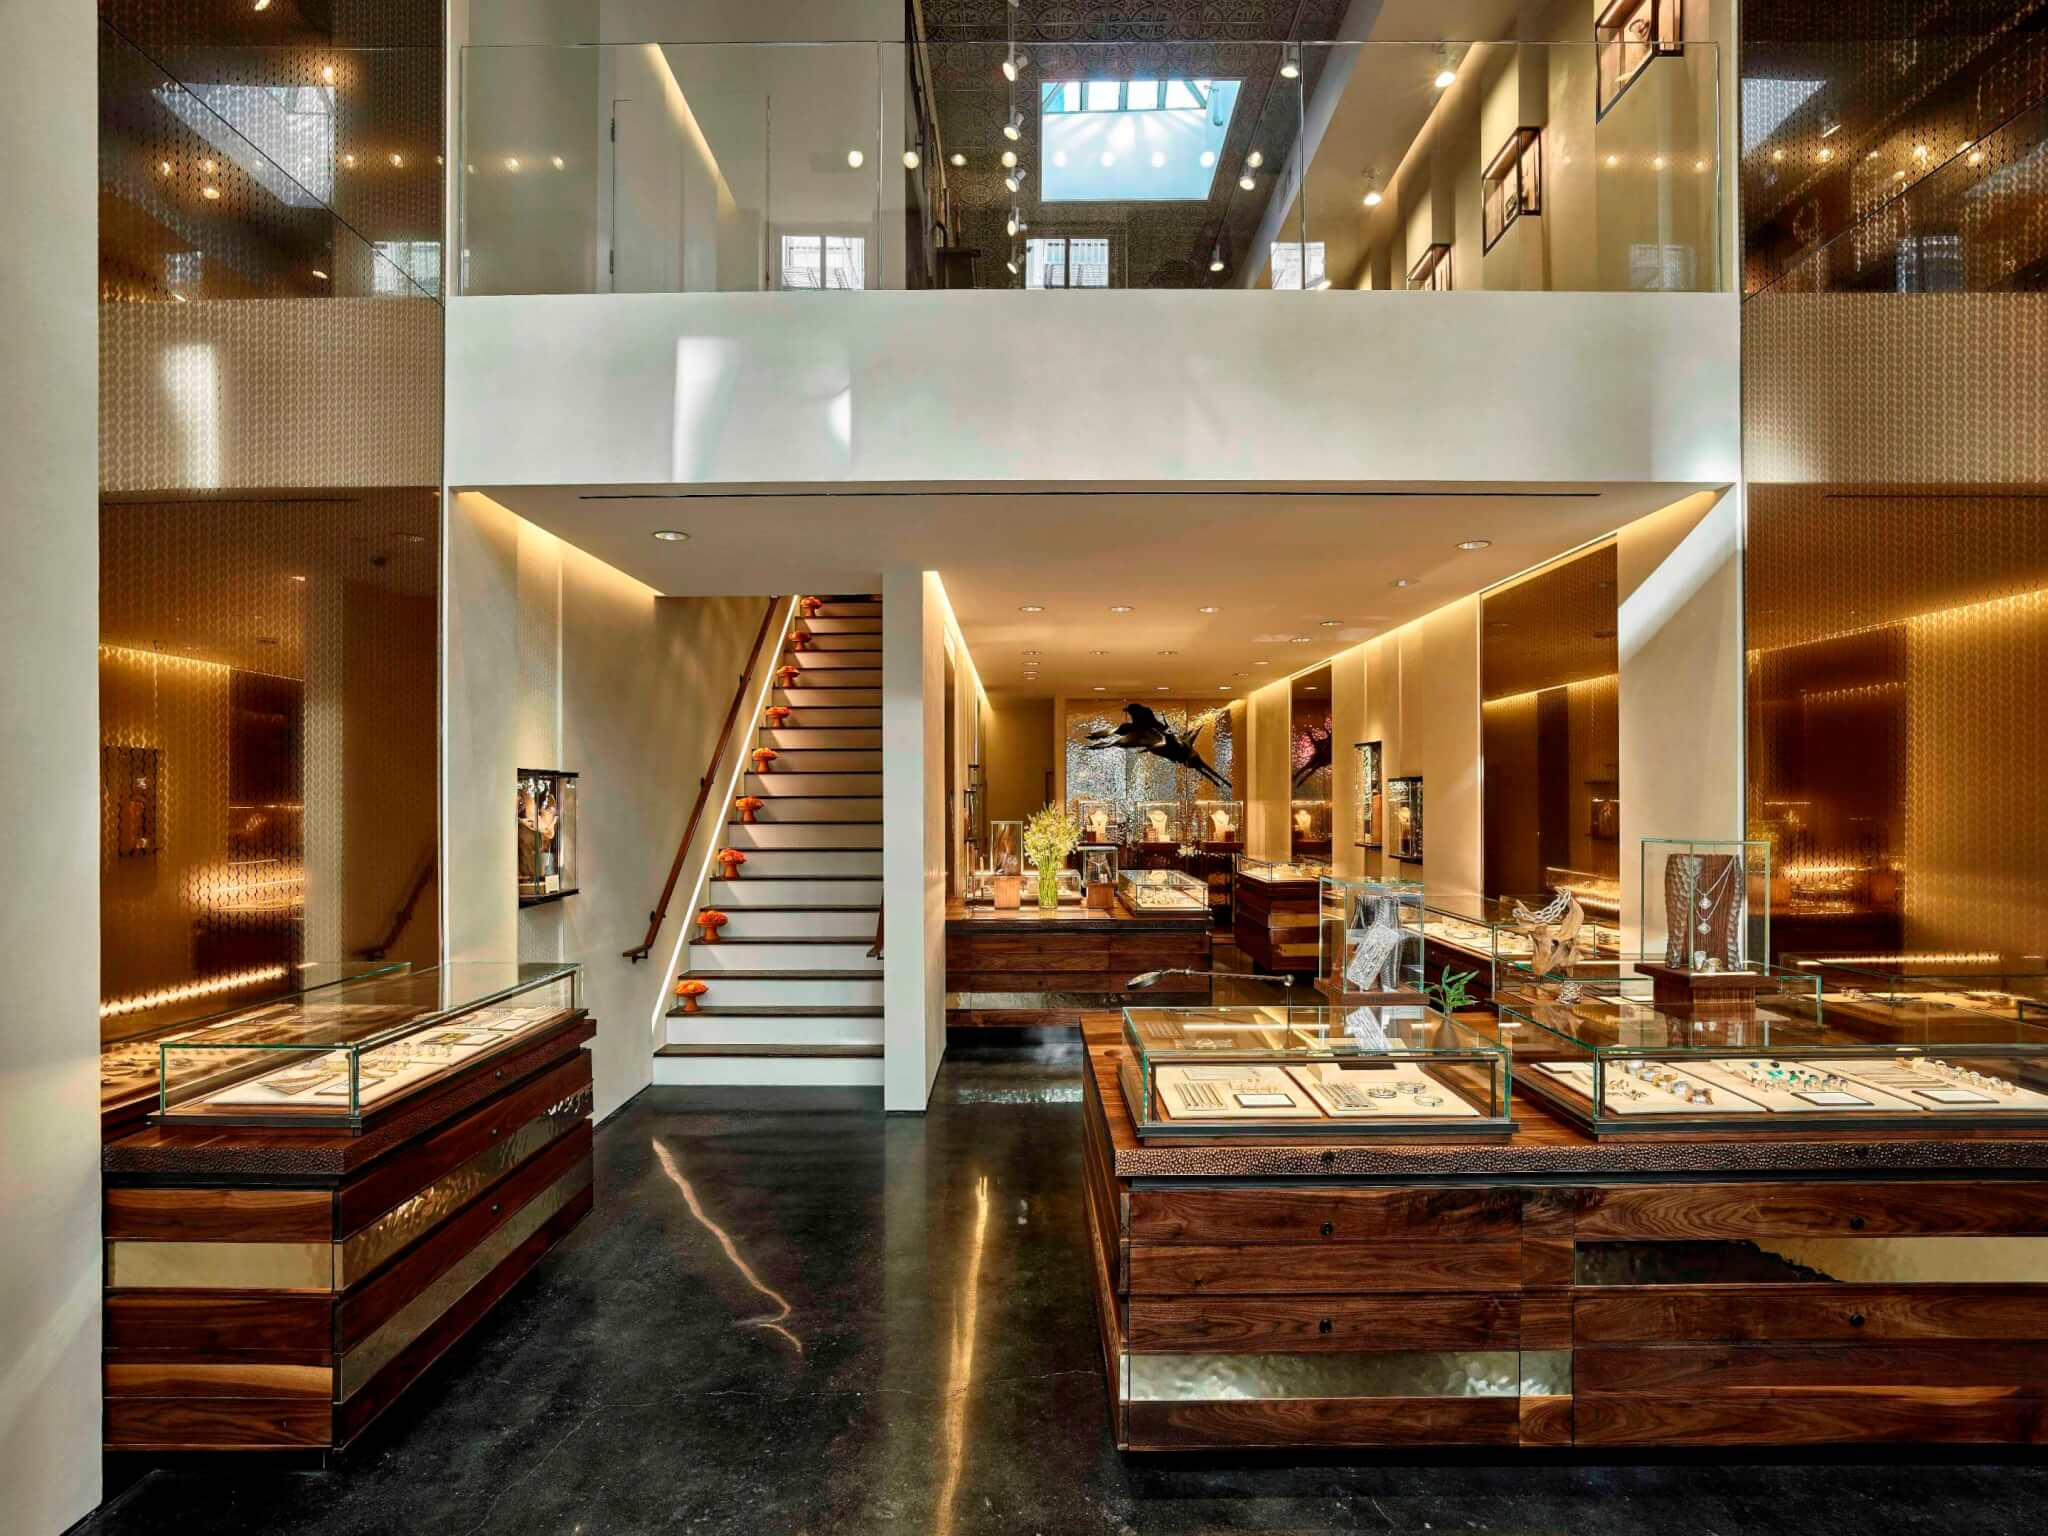 Interior Design:  Design Republic Partners Architects LLP